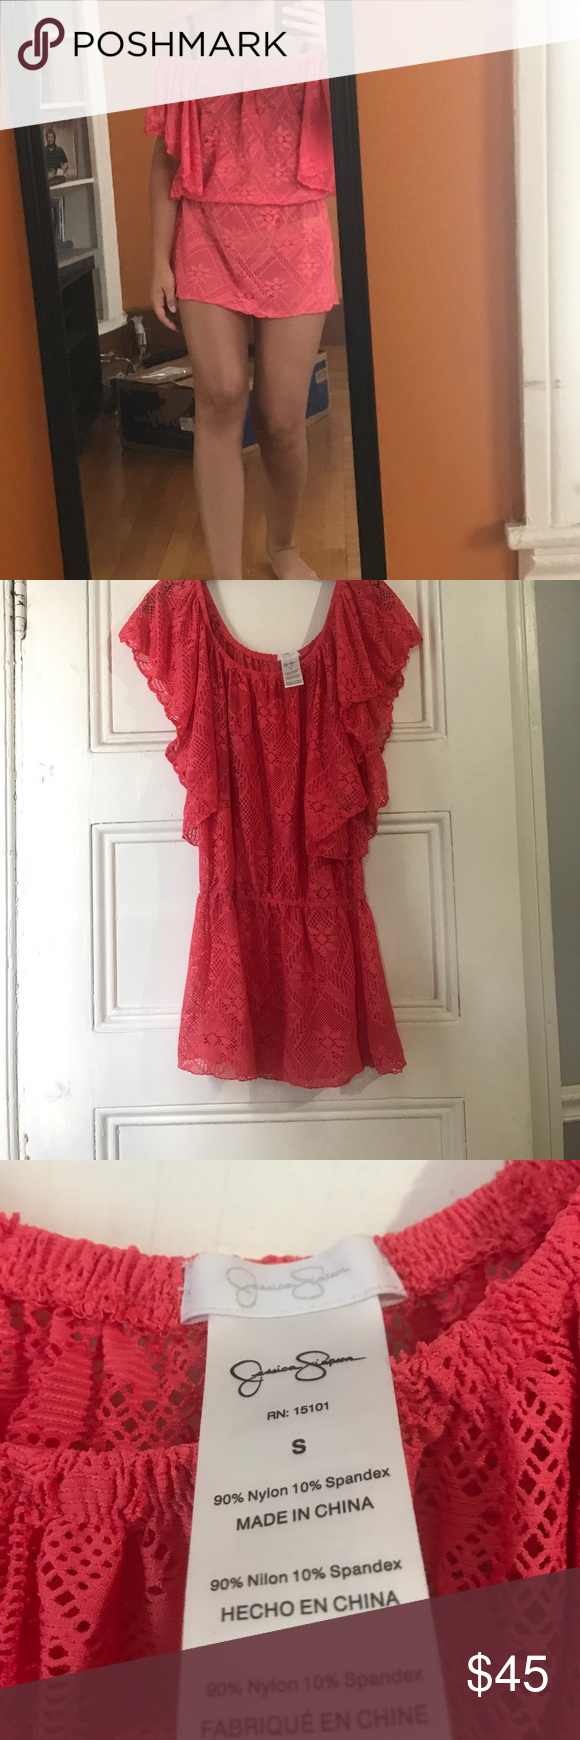 Jessica Simpson coverup Coral lace coverup with elastic around waist. Only worn 3 times!! Jessica Simpson Dresses